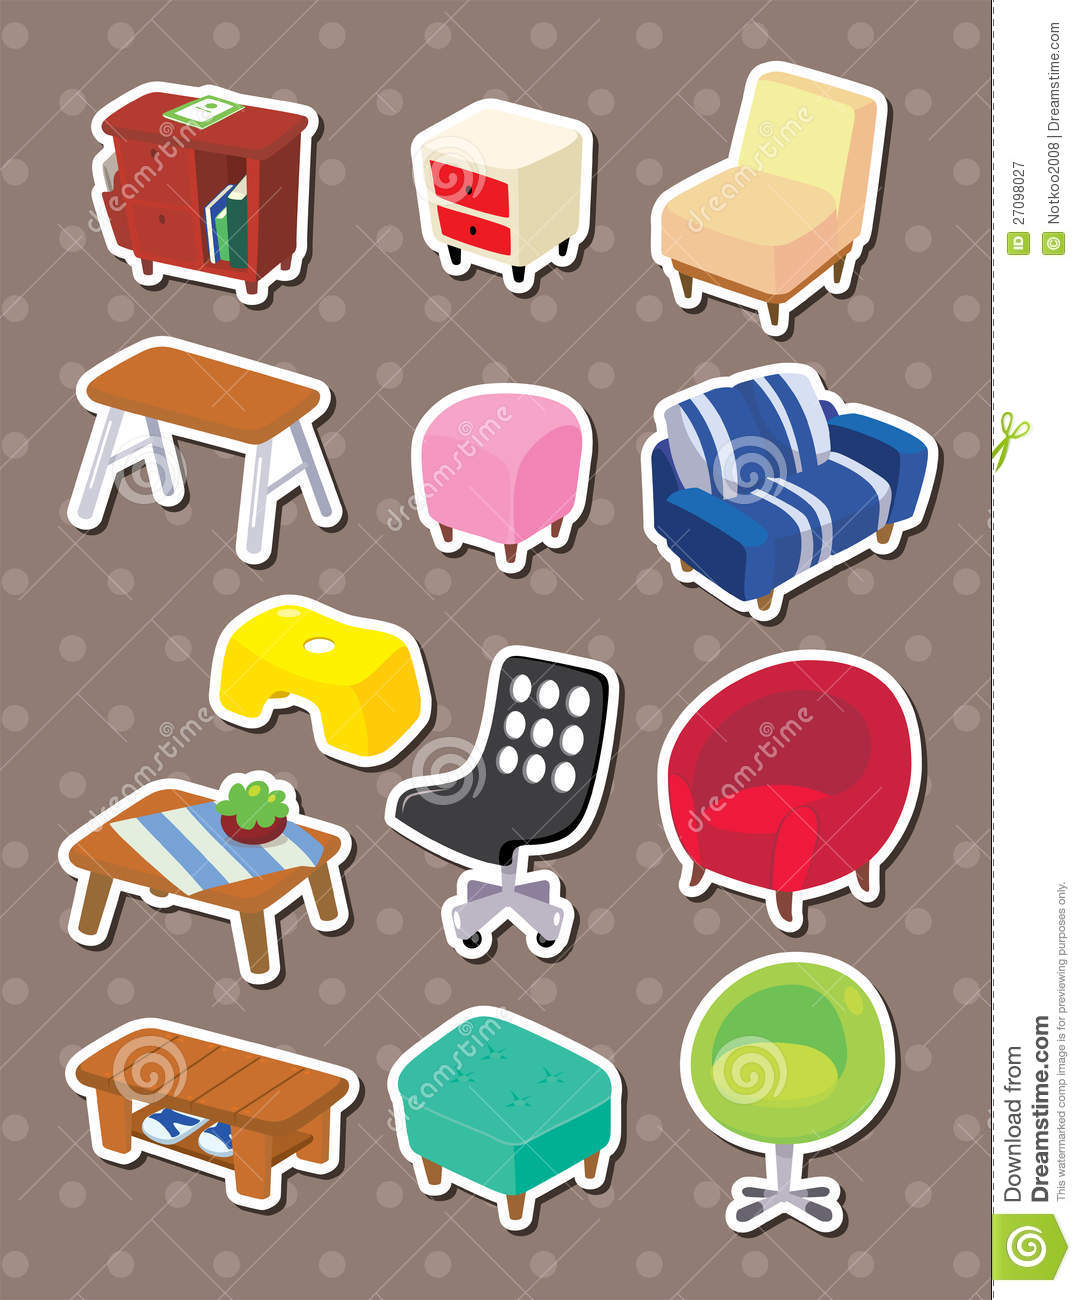 print sofa set steel come bed pictures cartoon furniture stickers royalty free stock photography ...